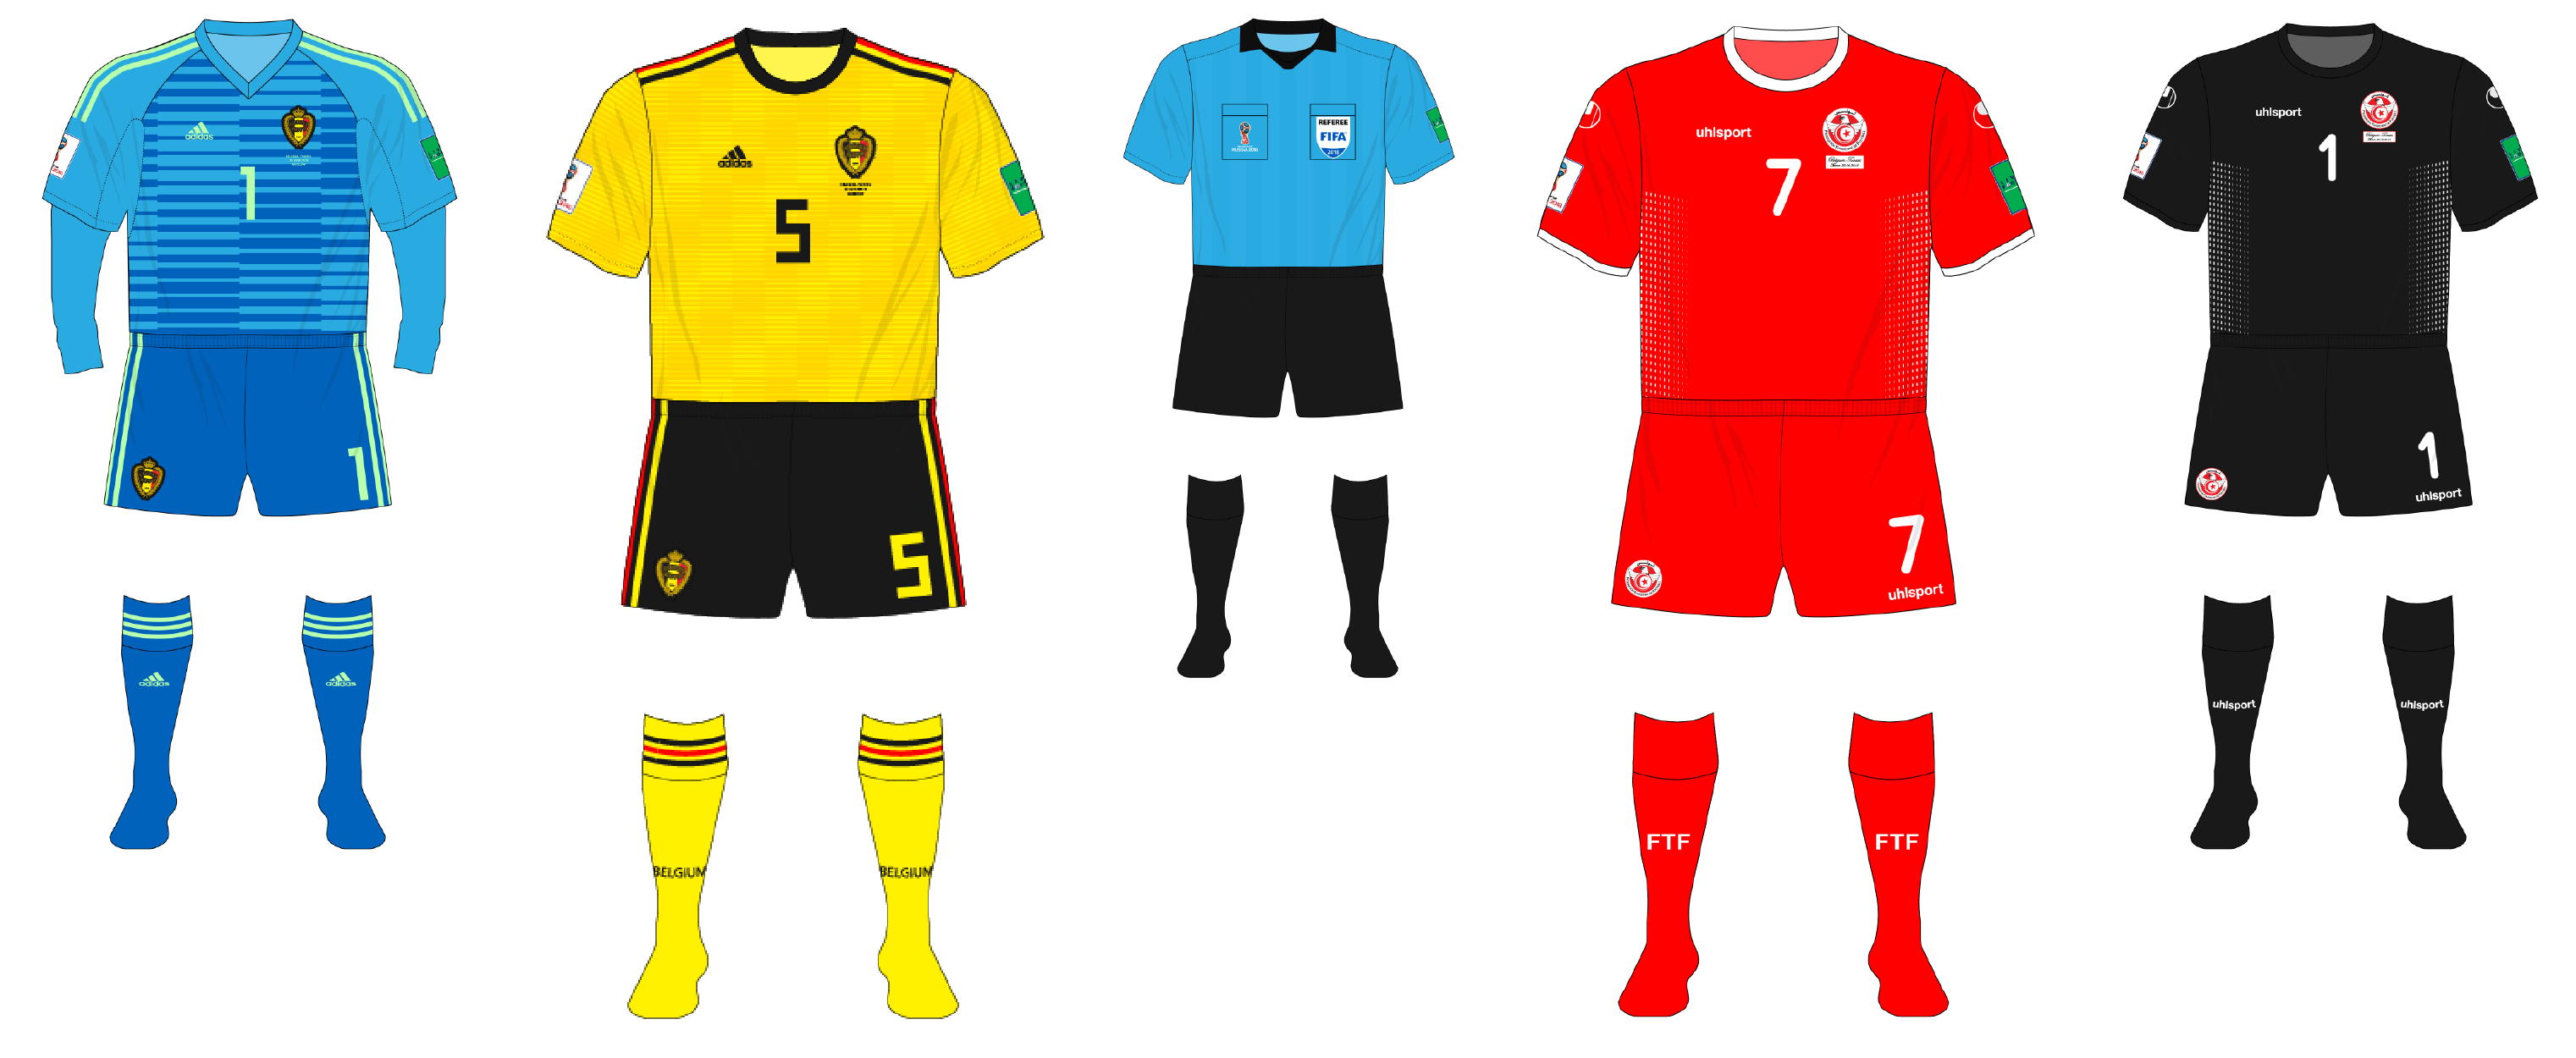 de95f59d2a0 2018 World Cup kit-tracker – Group G completed – Museum of Jerseys